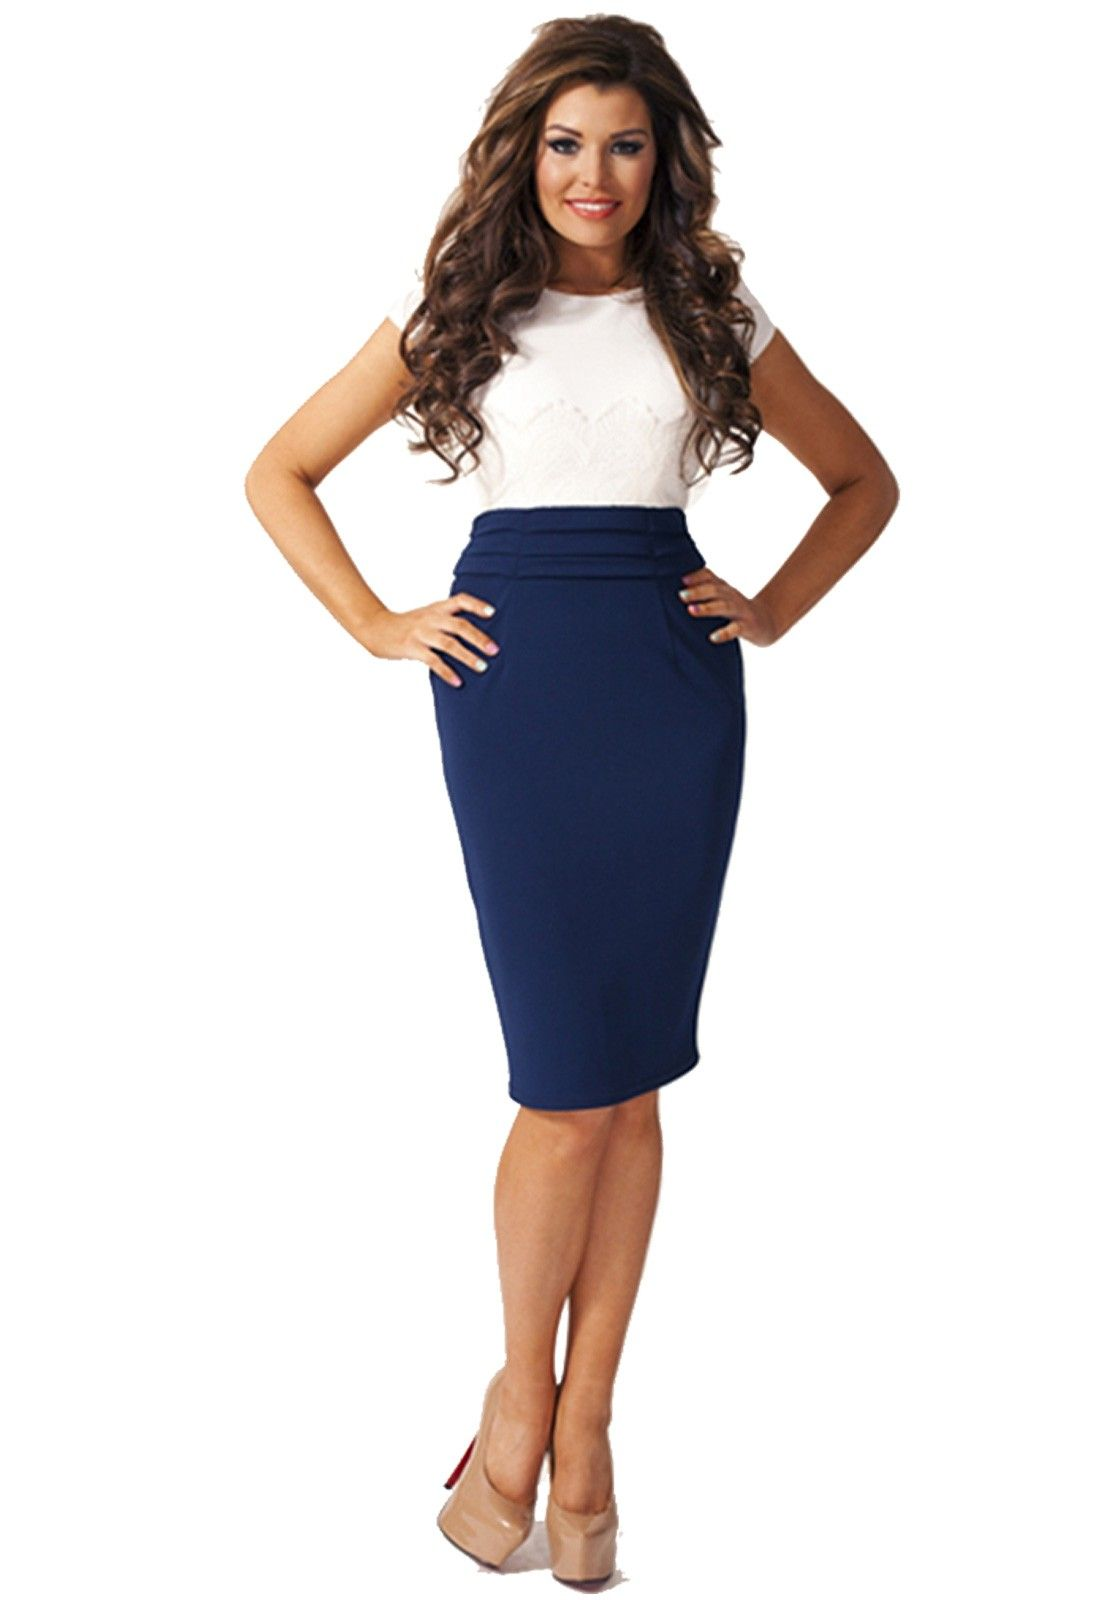 Turn heads in this statement piece shift dress from the jessica